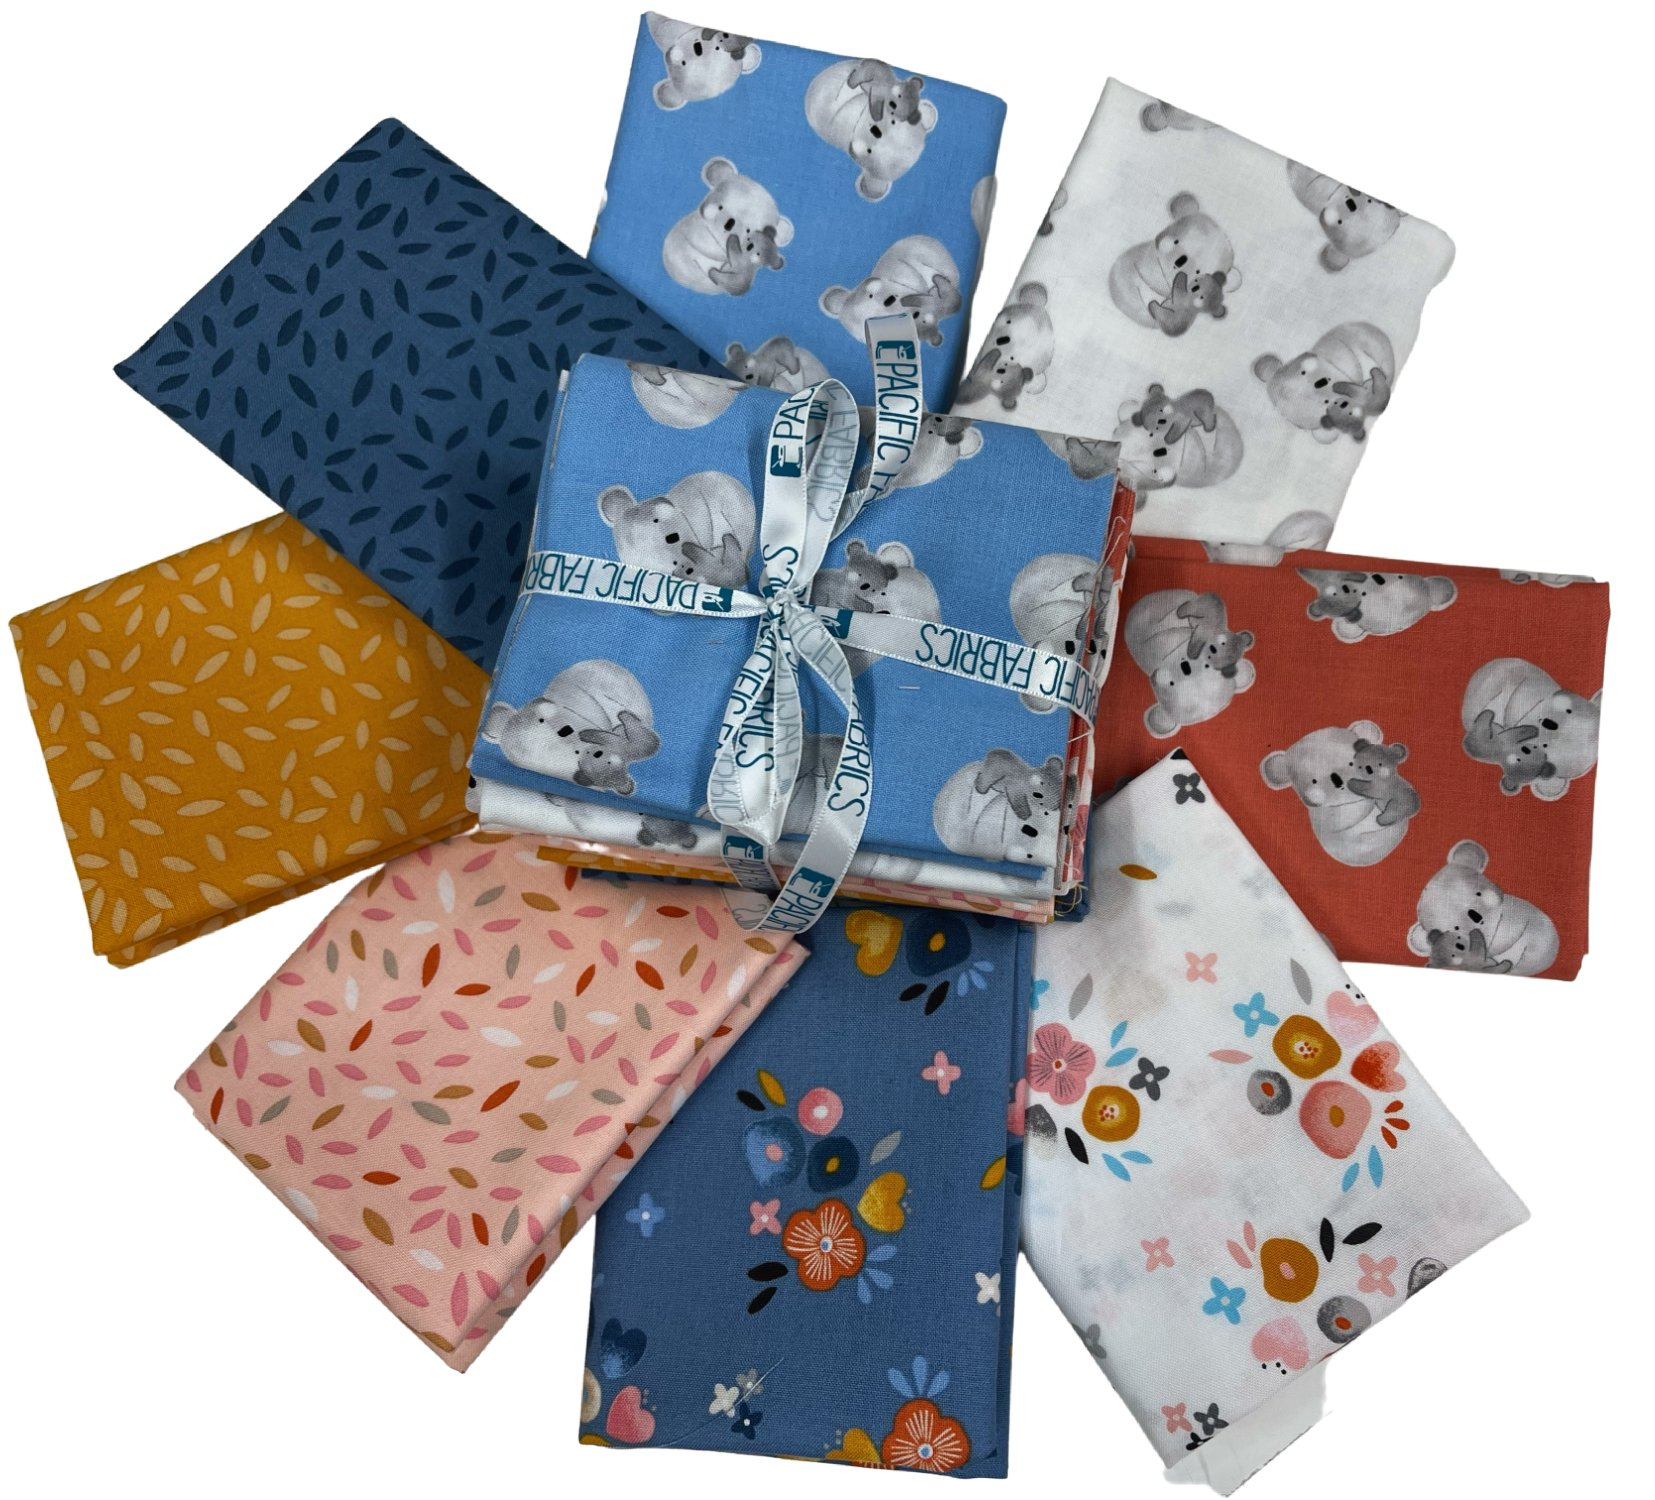 Windham Fabrics, Kenzie, Fat Quarter Bundle - 8 pc